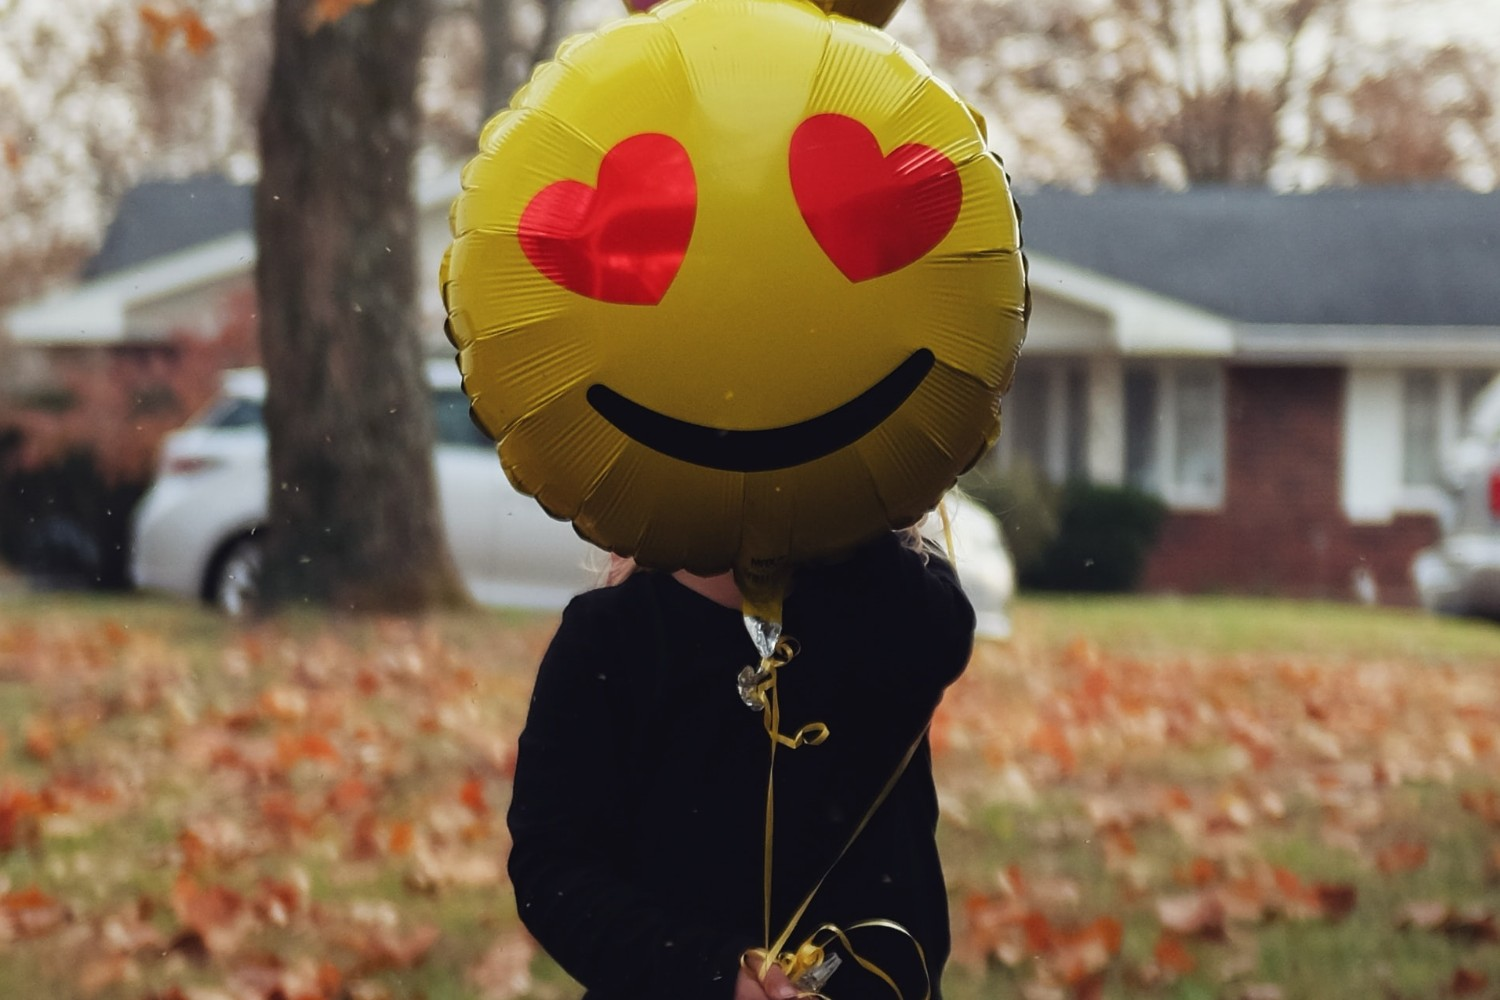 Person with smiley balloon